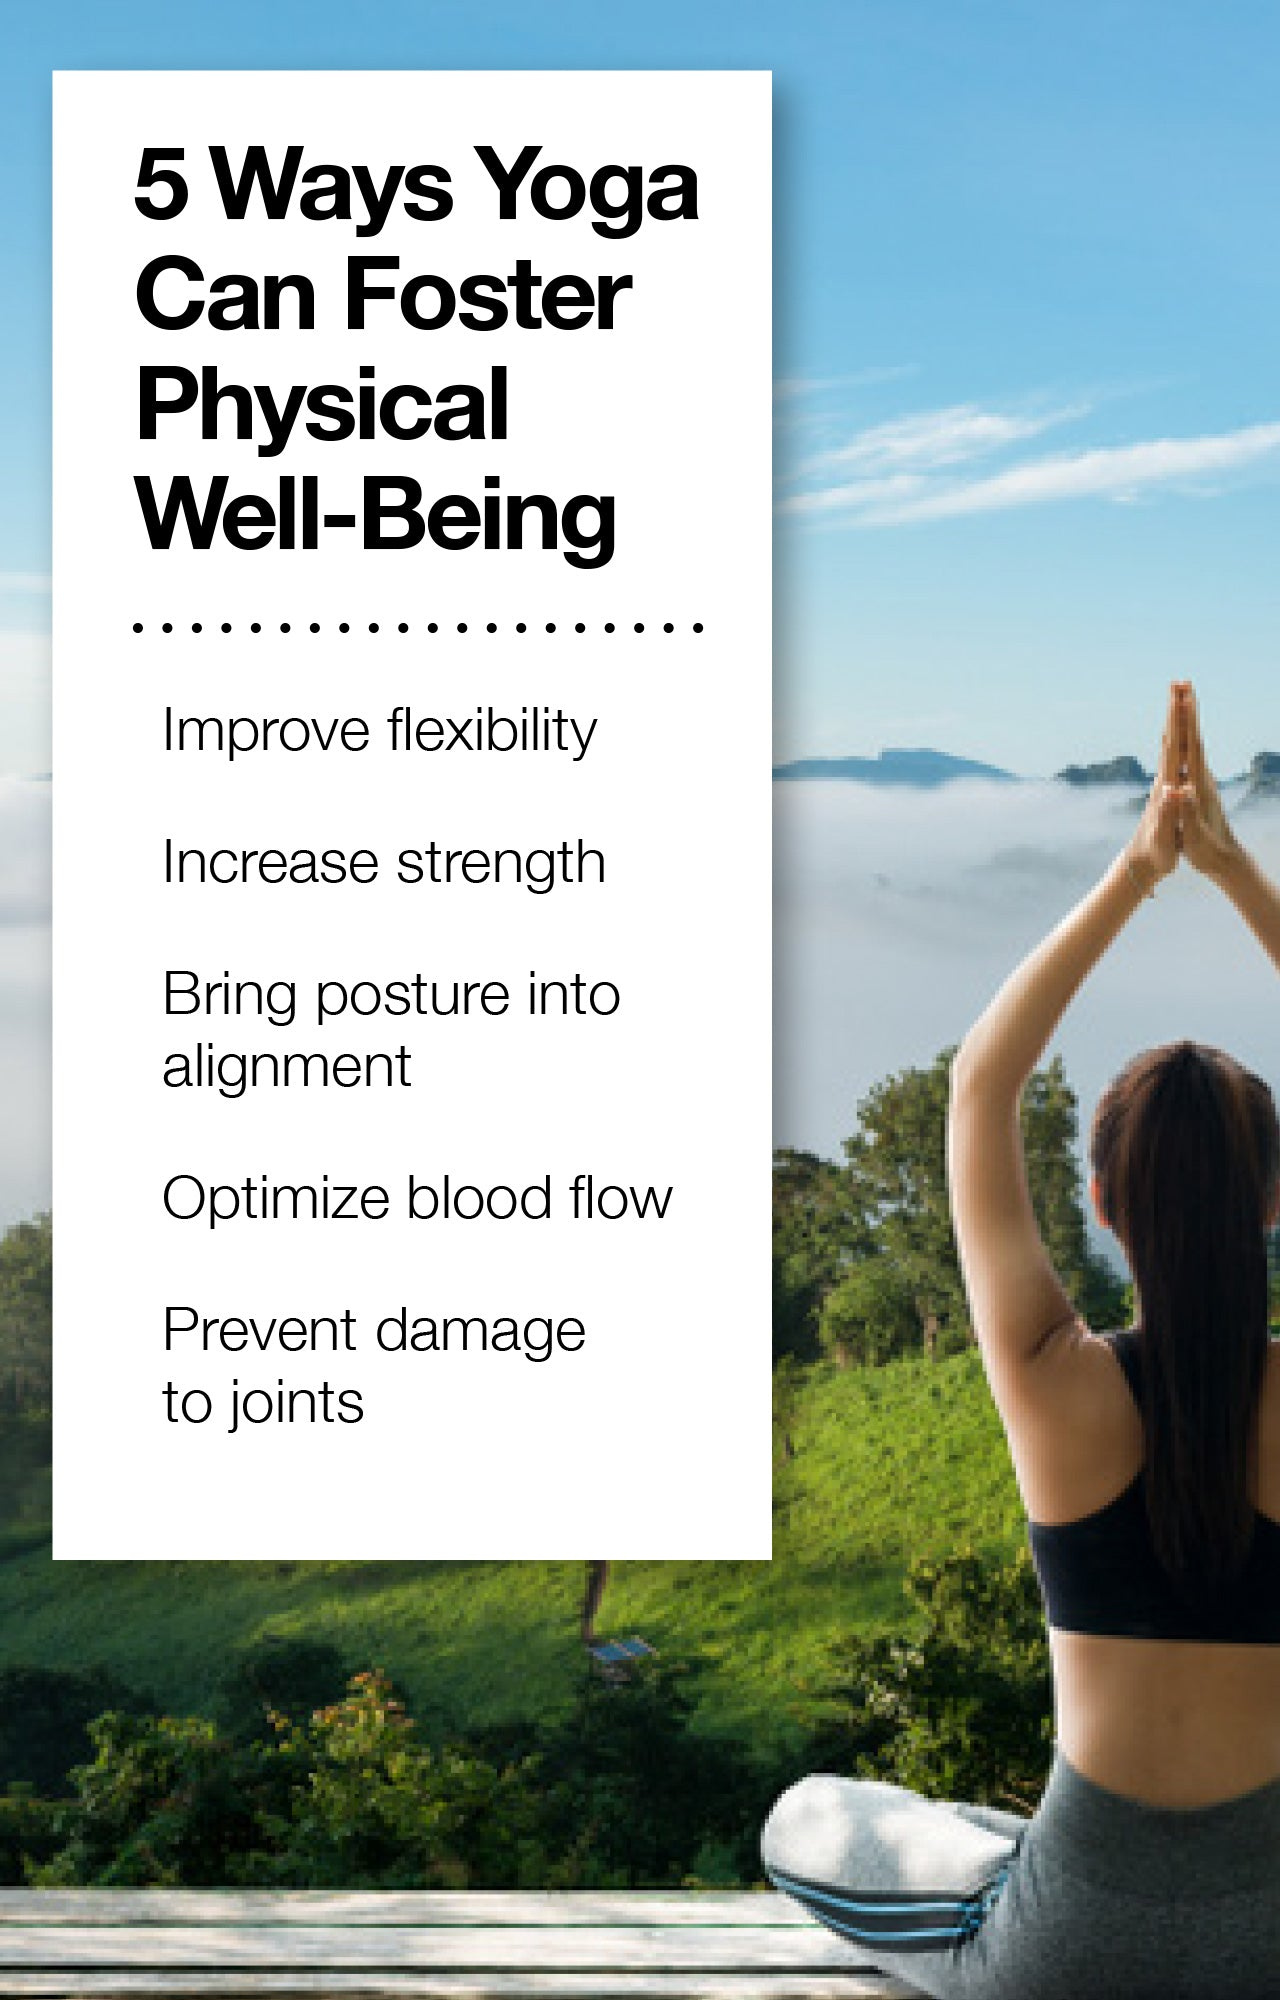 How yoga fosters physical well-being